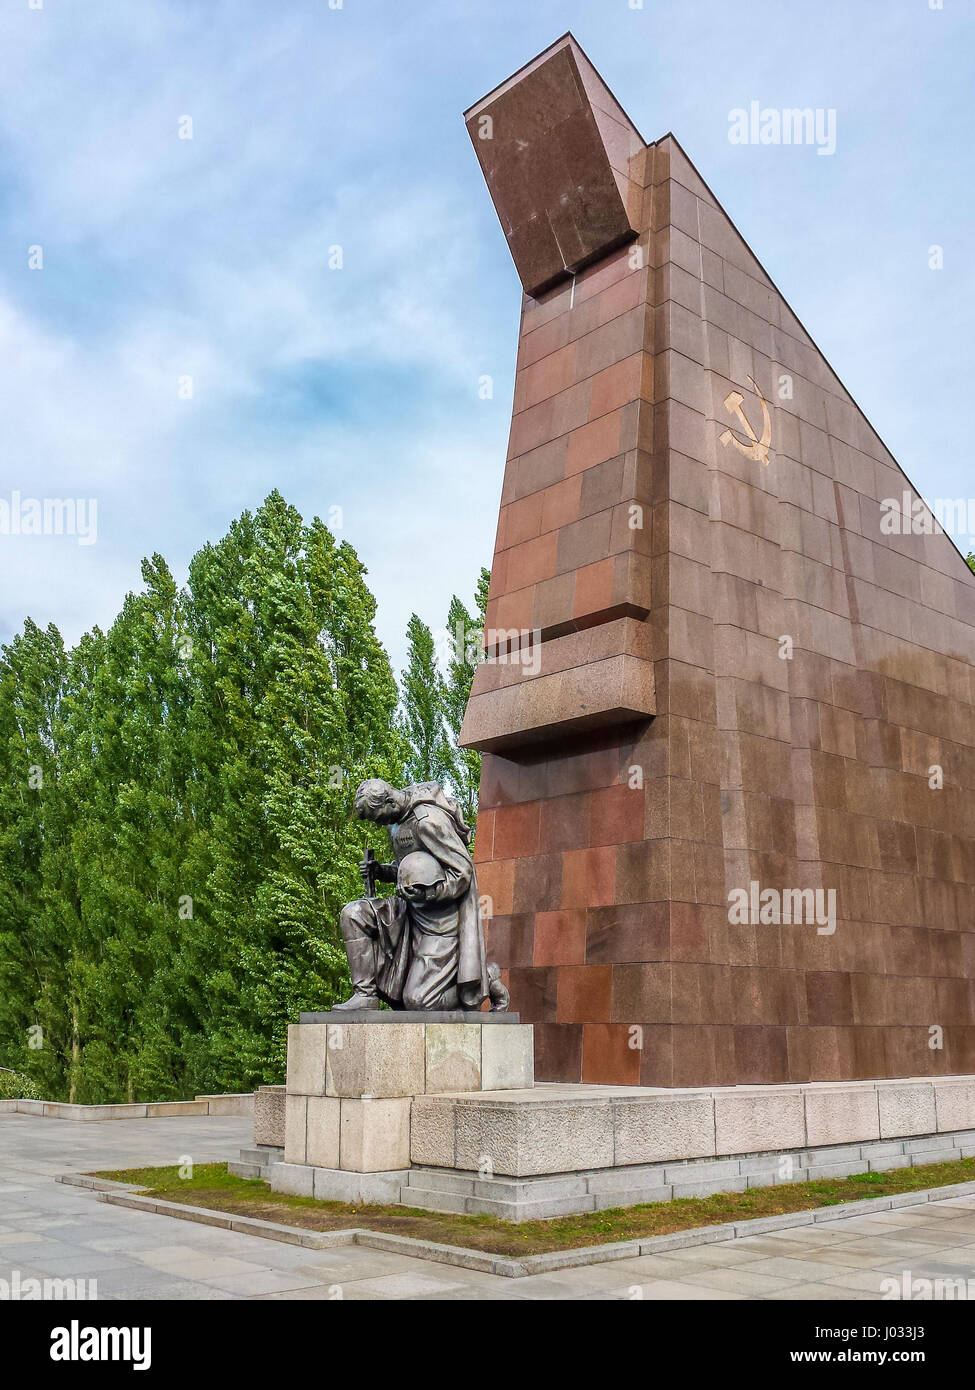 russian soldier statue in treptower park berlin germany stock photo royalty free image. Black Bedroom Furniture Sets. Home Design Ideas